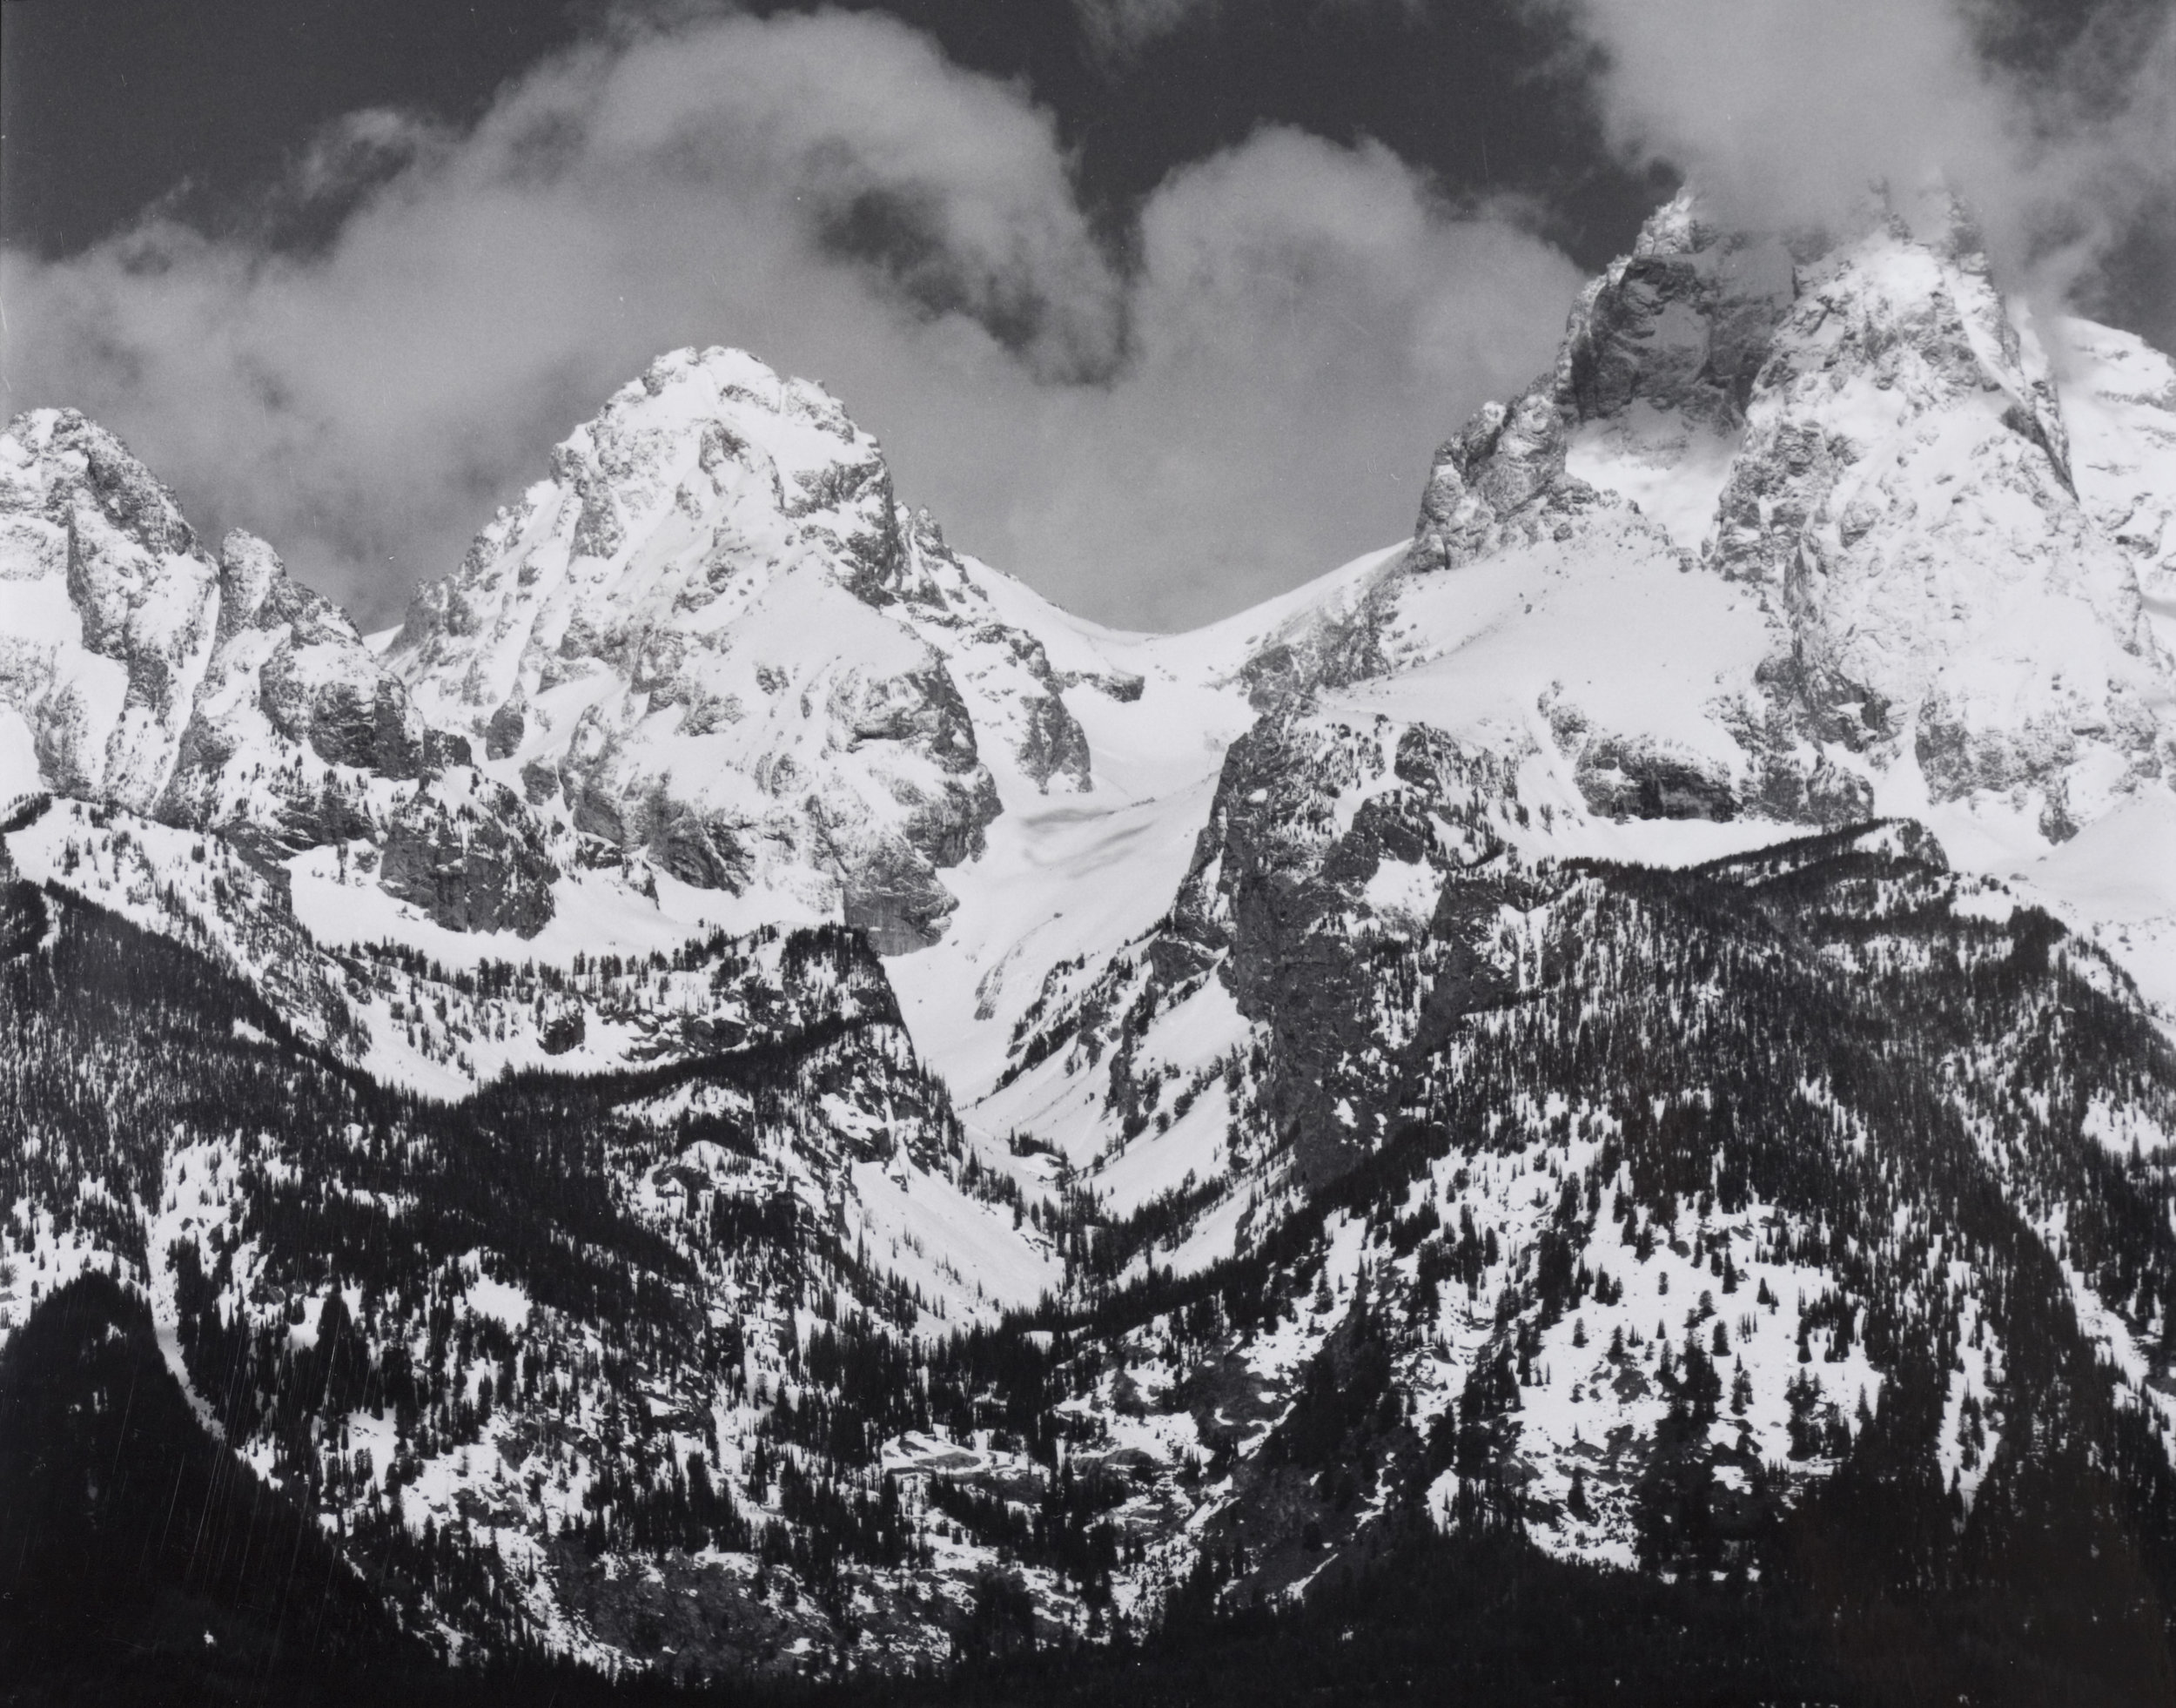 Clouds and Mountains, The Tetons,WY, 2006